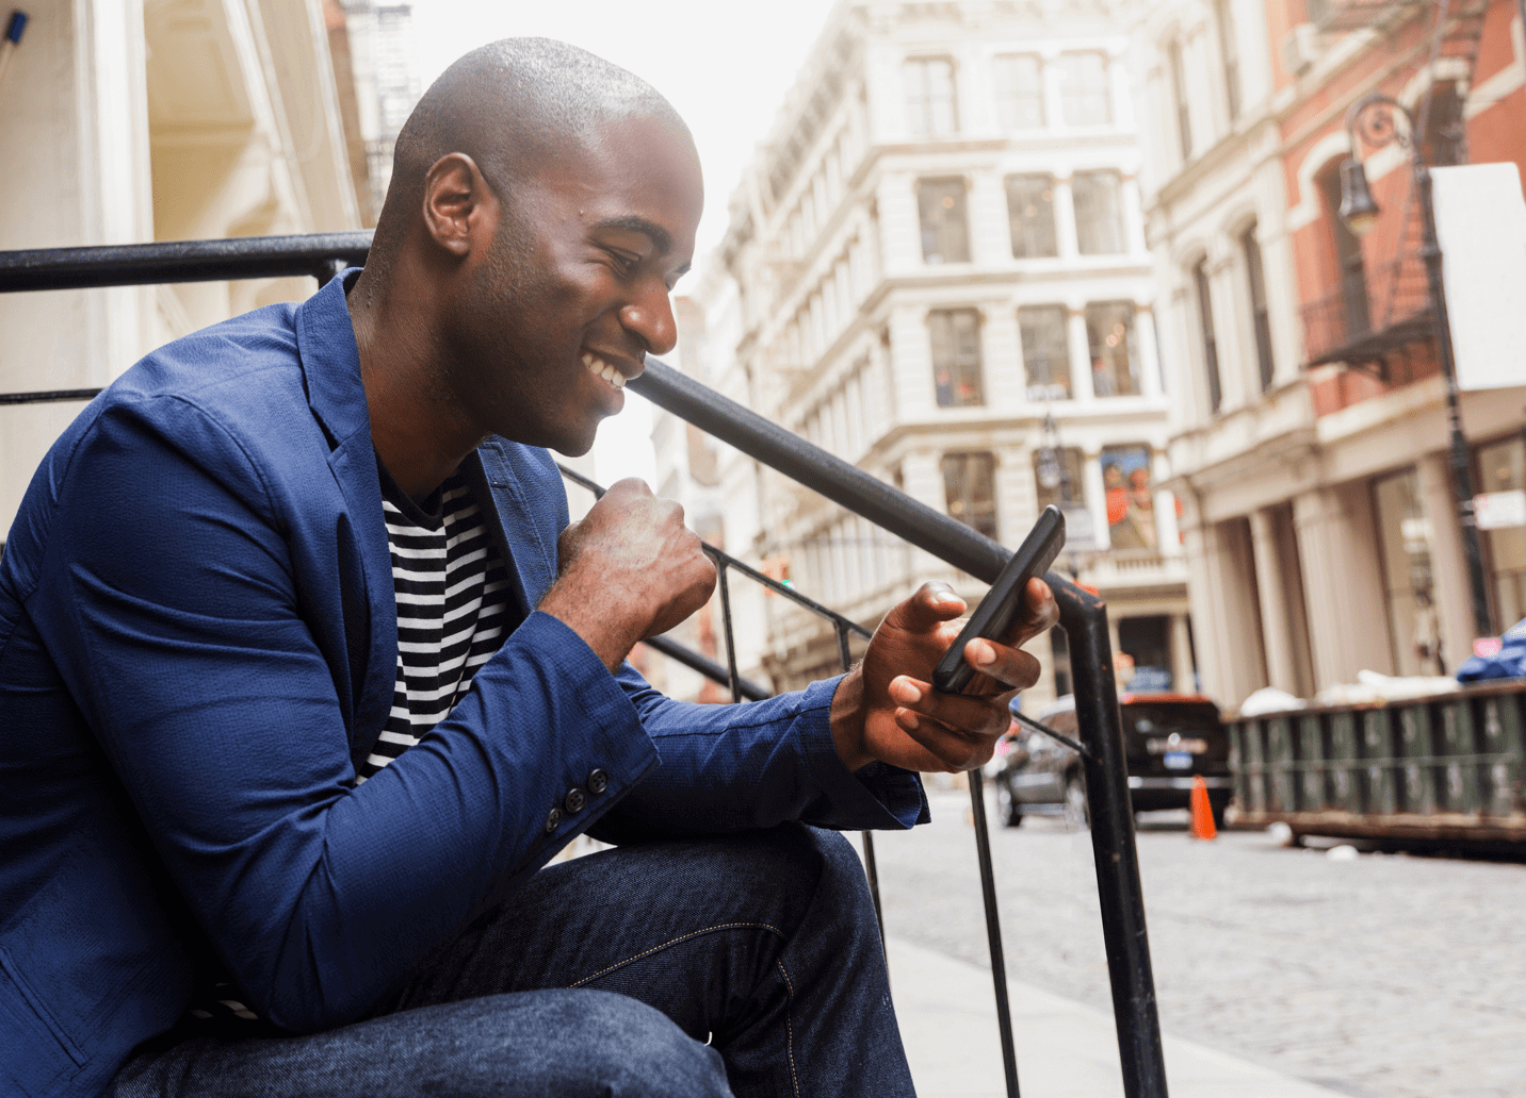 Man sitting outdoors using his phone.